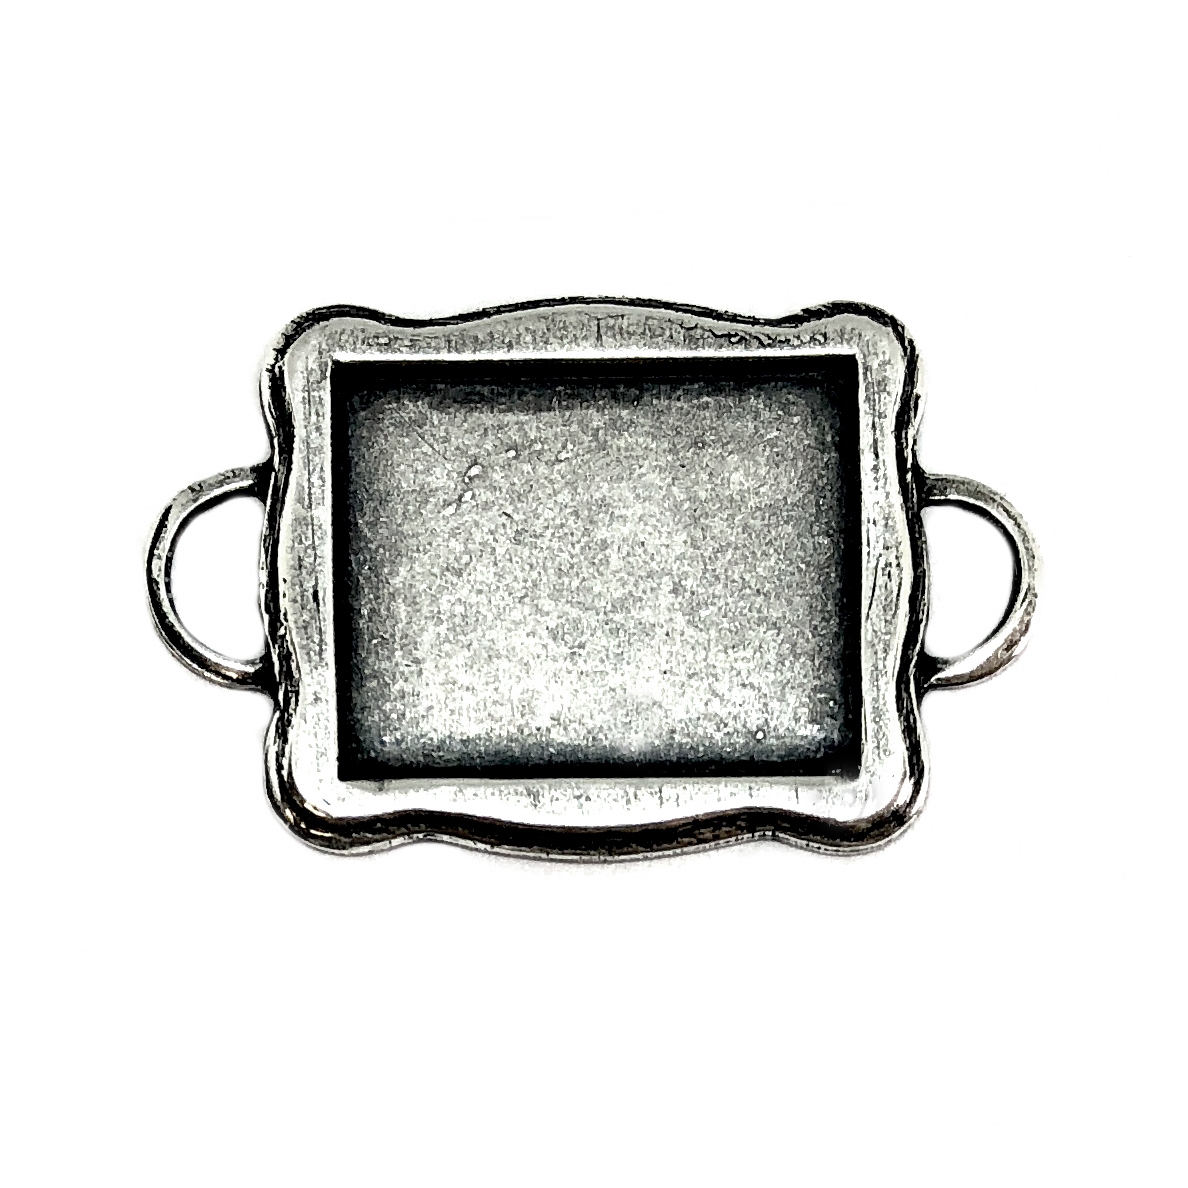 silver bezel, connectors, 06394, jewelry making, silverware silverplate, vintage jewelry supplies,  bezel frames, jewelry making, US Made, nickel free, Bsue Boutiques, silver frame, frame bezel, frame connector, bezel connector